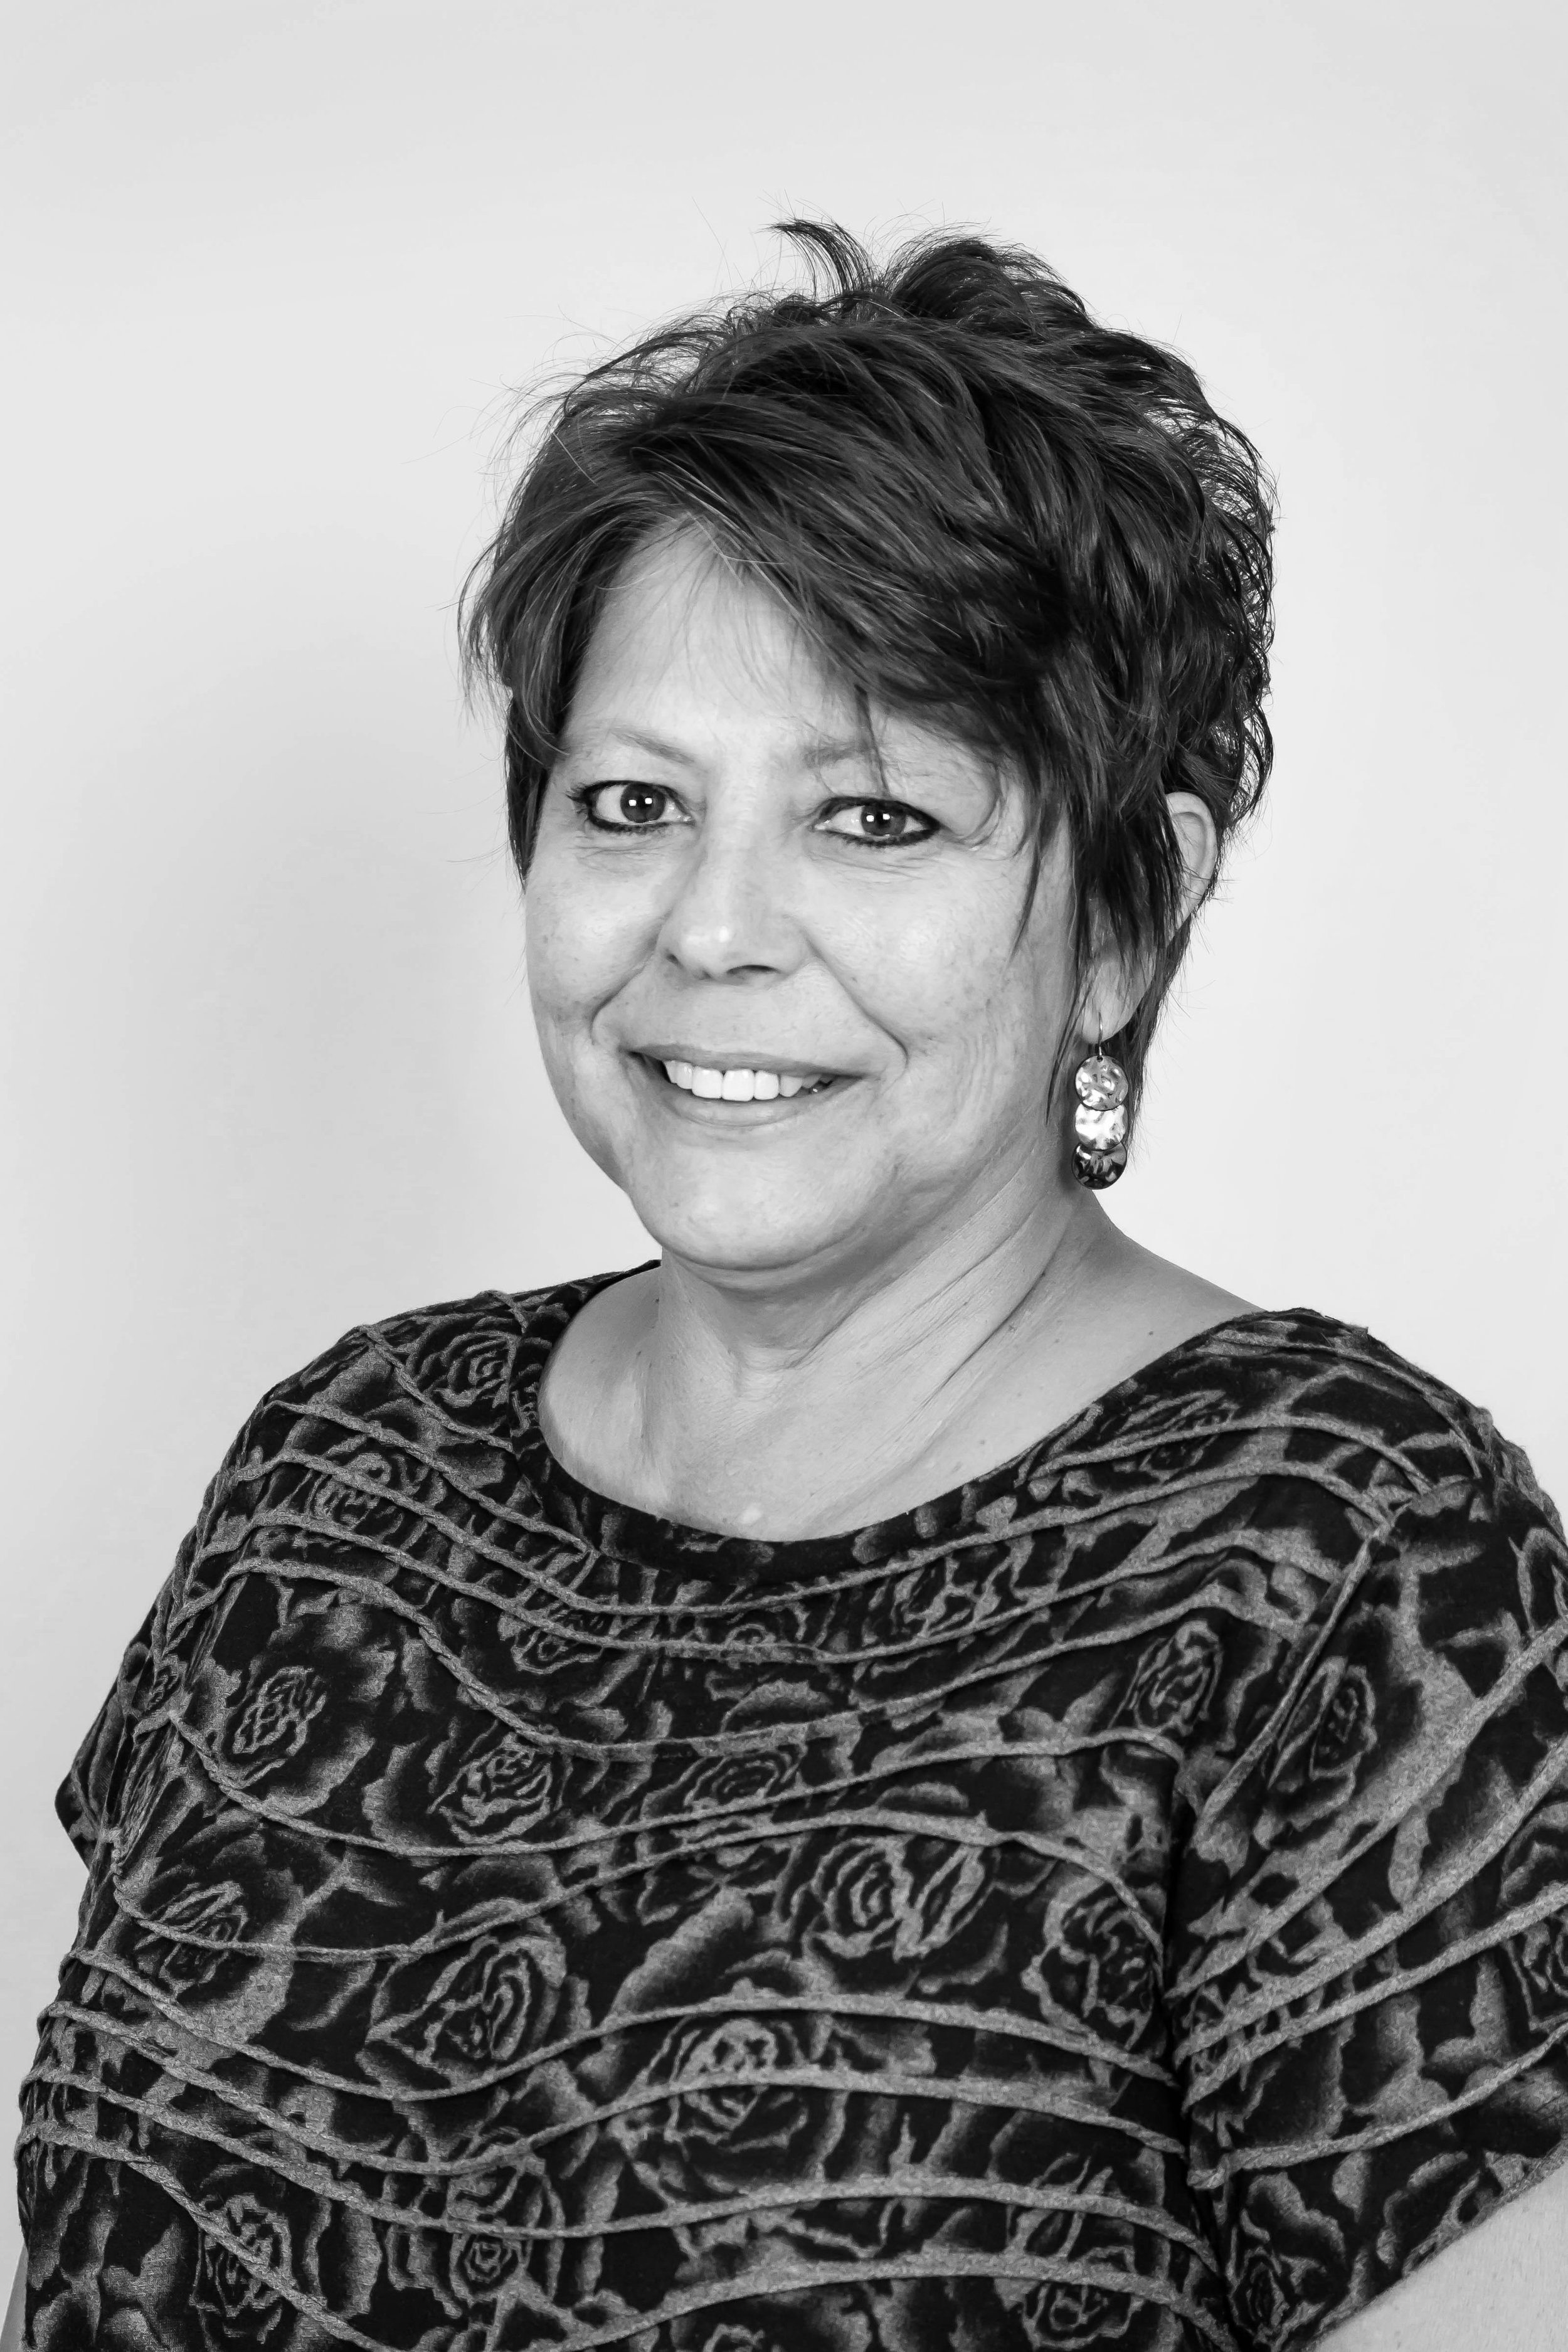 ROBIN FLANNIGAN    BOOKKEEPER   Robin has over 20 years of bookkeeping experience in the single-family and multi-family construction industries. Her knowledge and expertise helps keep Team C Construction's financials pristine.